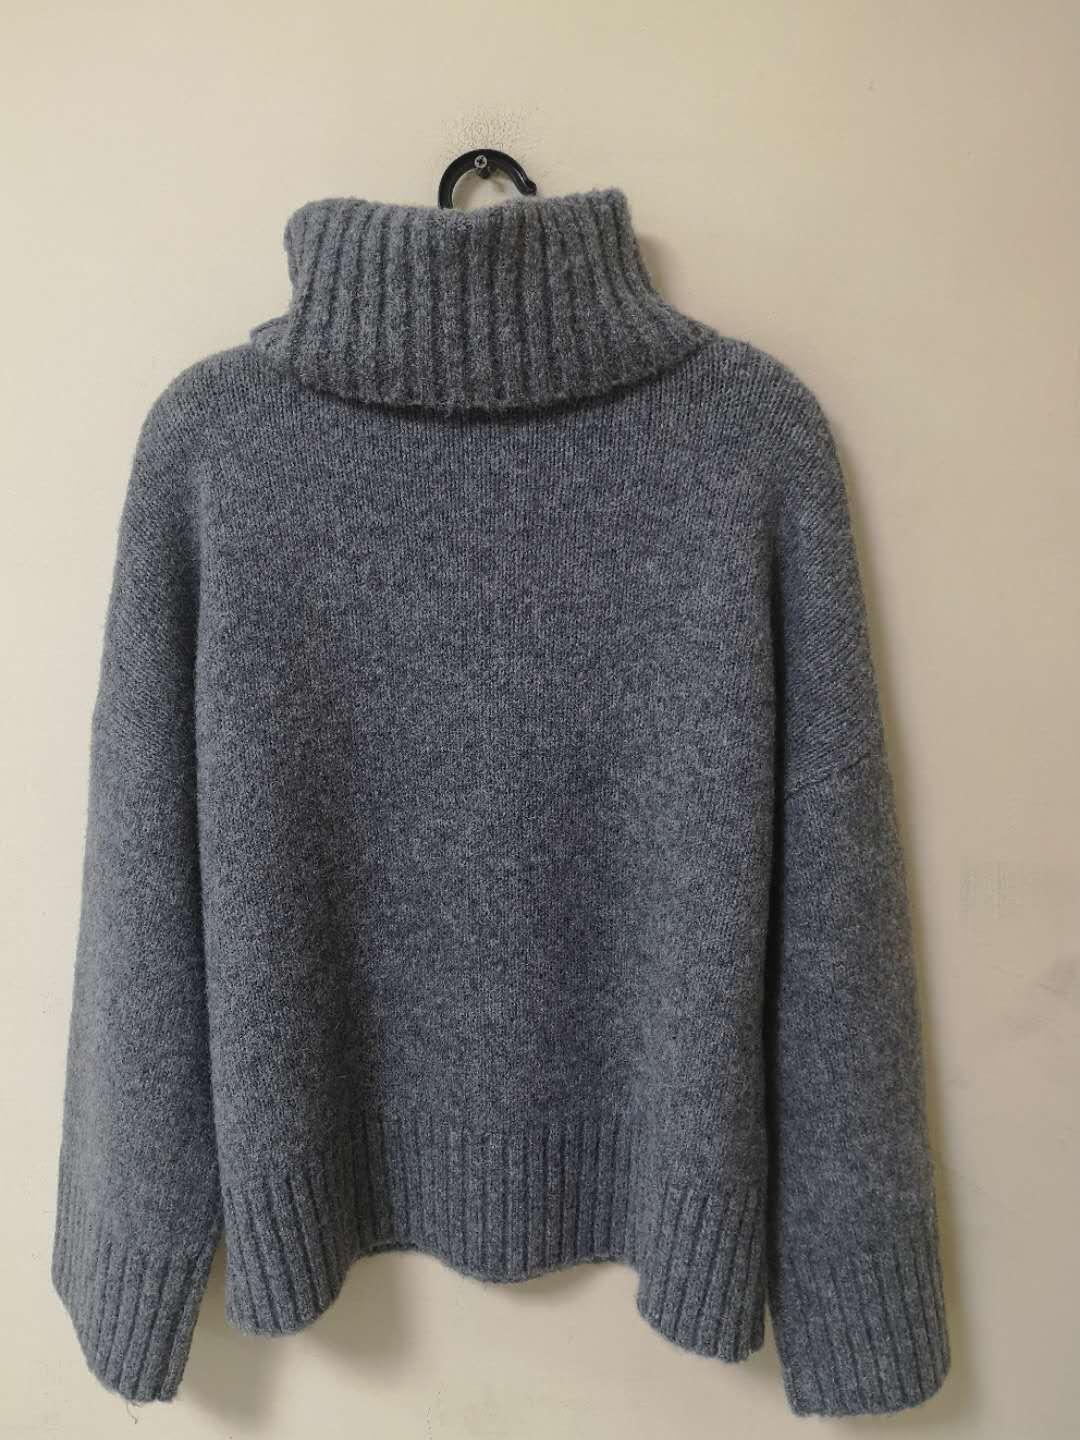 Maxted knitwear hanging